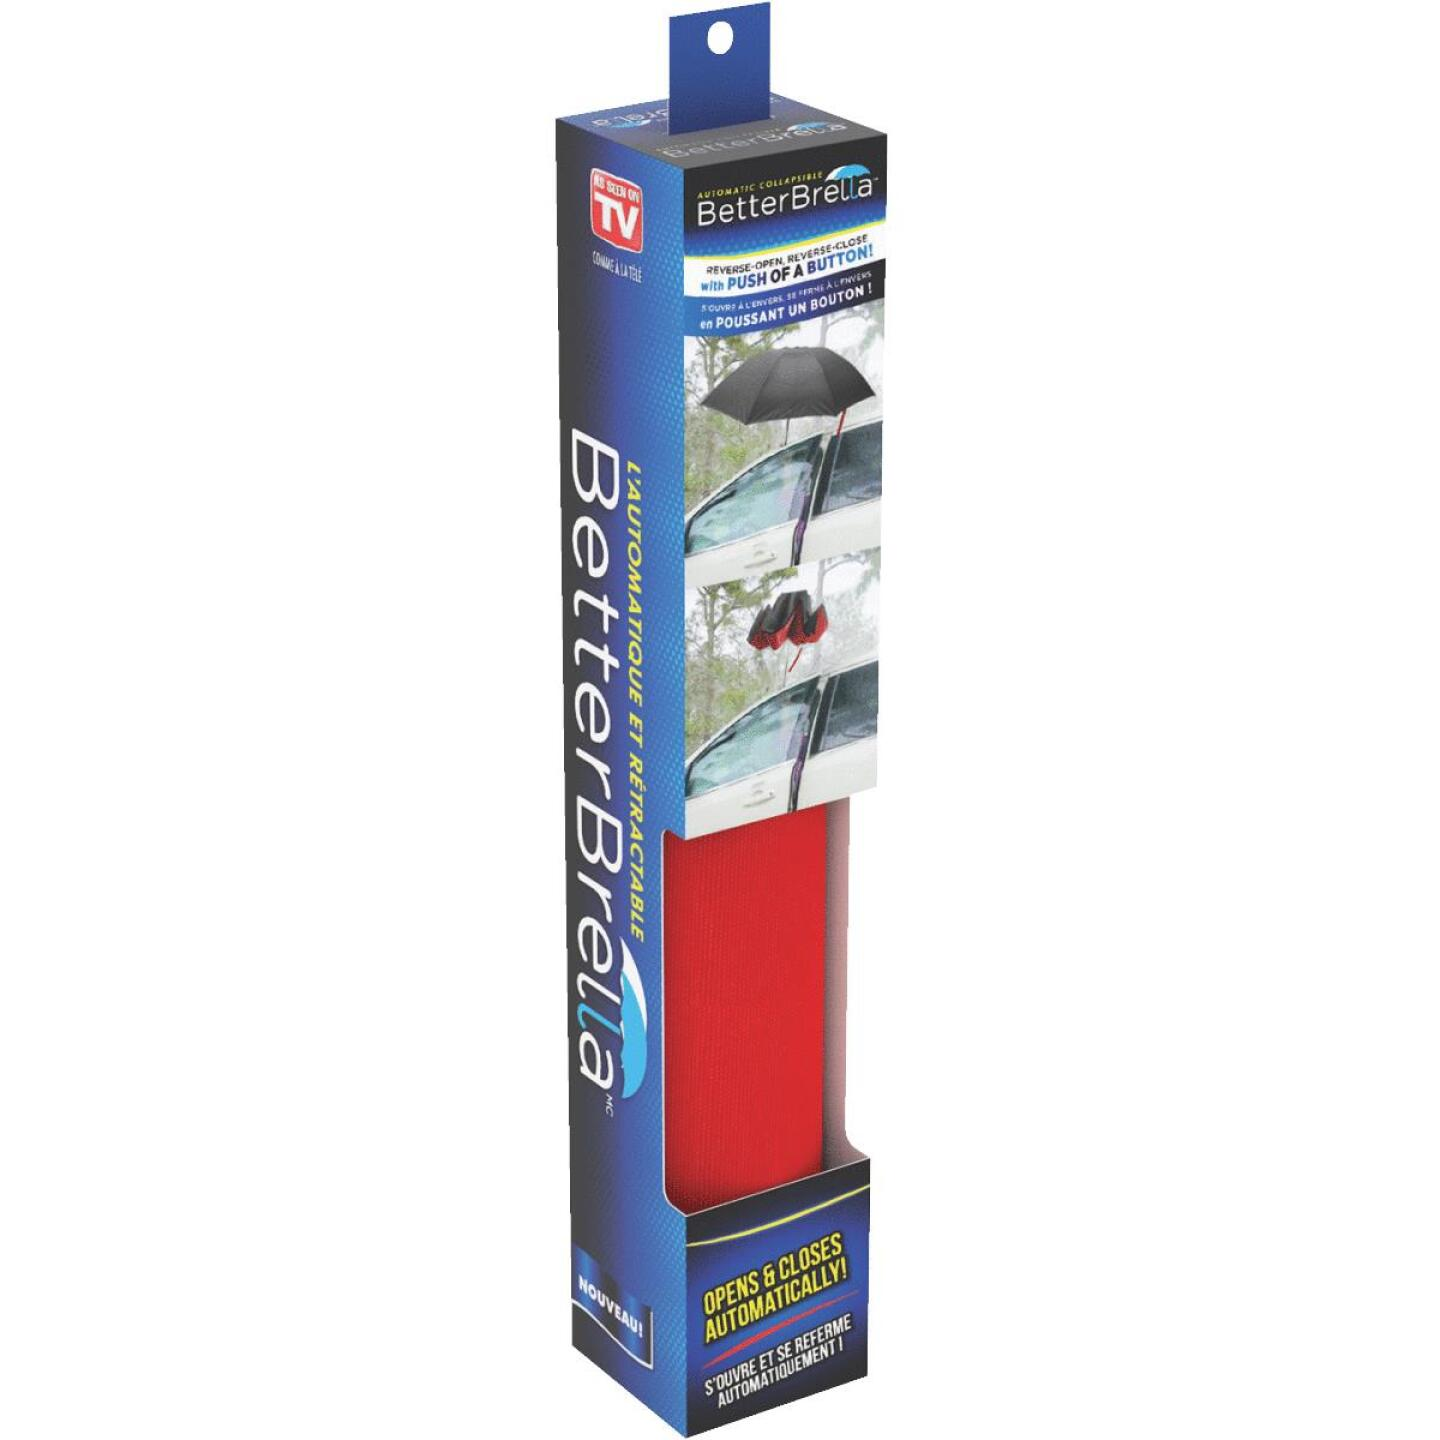 Better Brella Reverse-Open Automatic 40 In. Collapsible Umbrella, Red Image 1